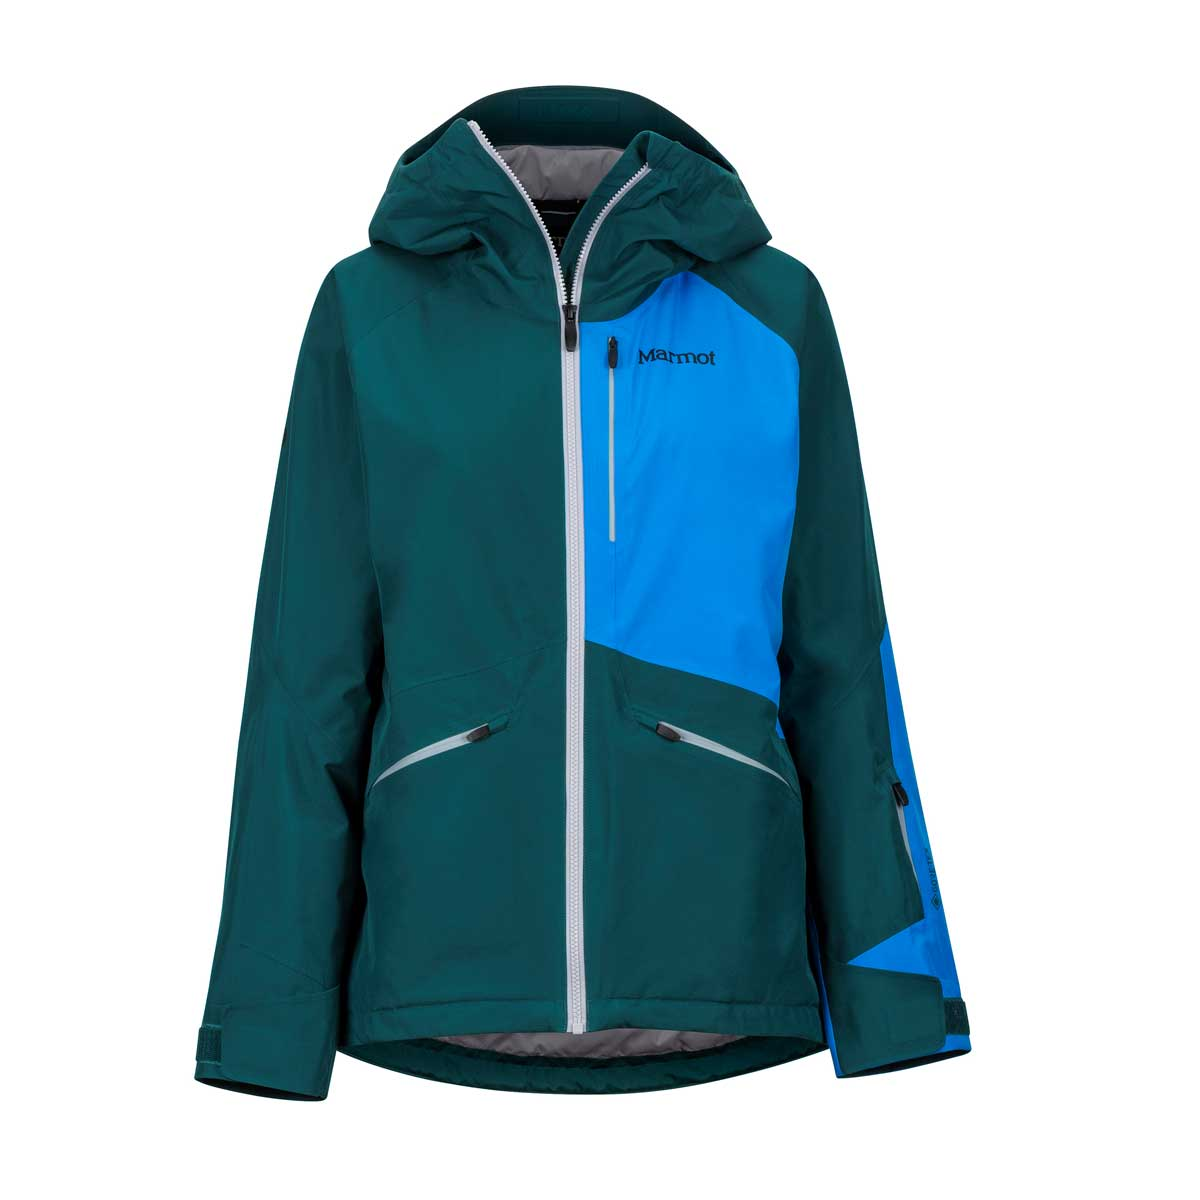 Marmot Women's Lightray Jacket in Deep Teal and Clear Blue